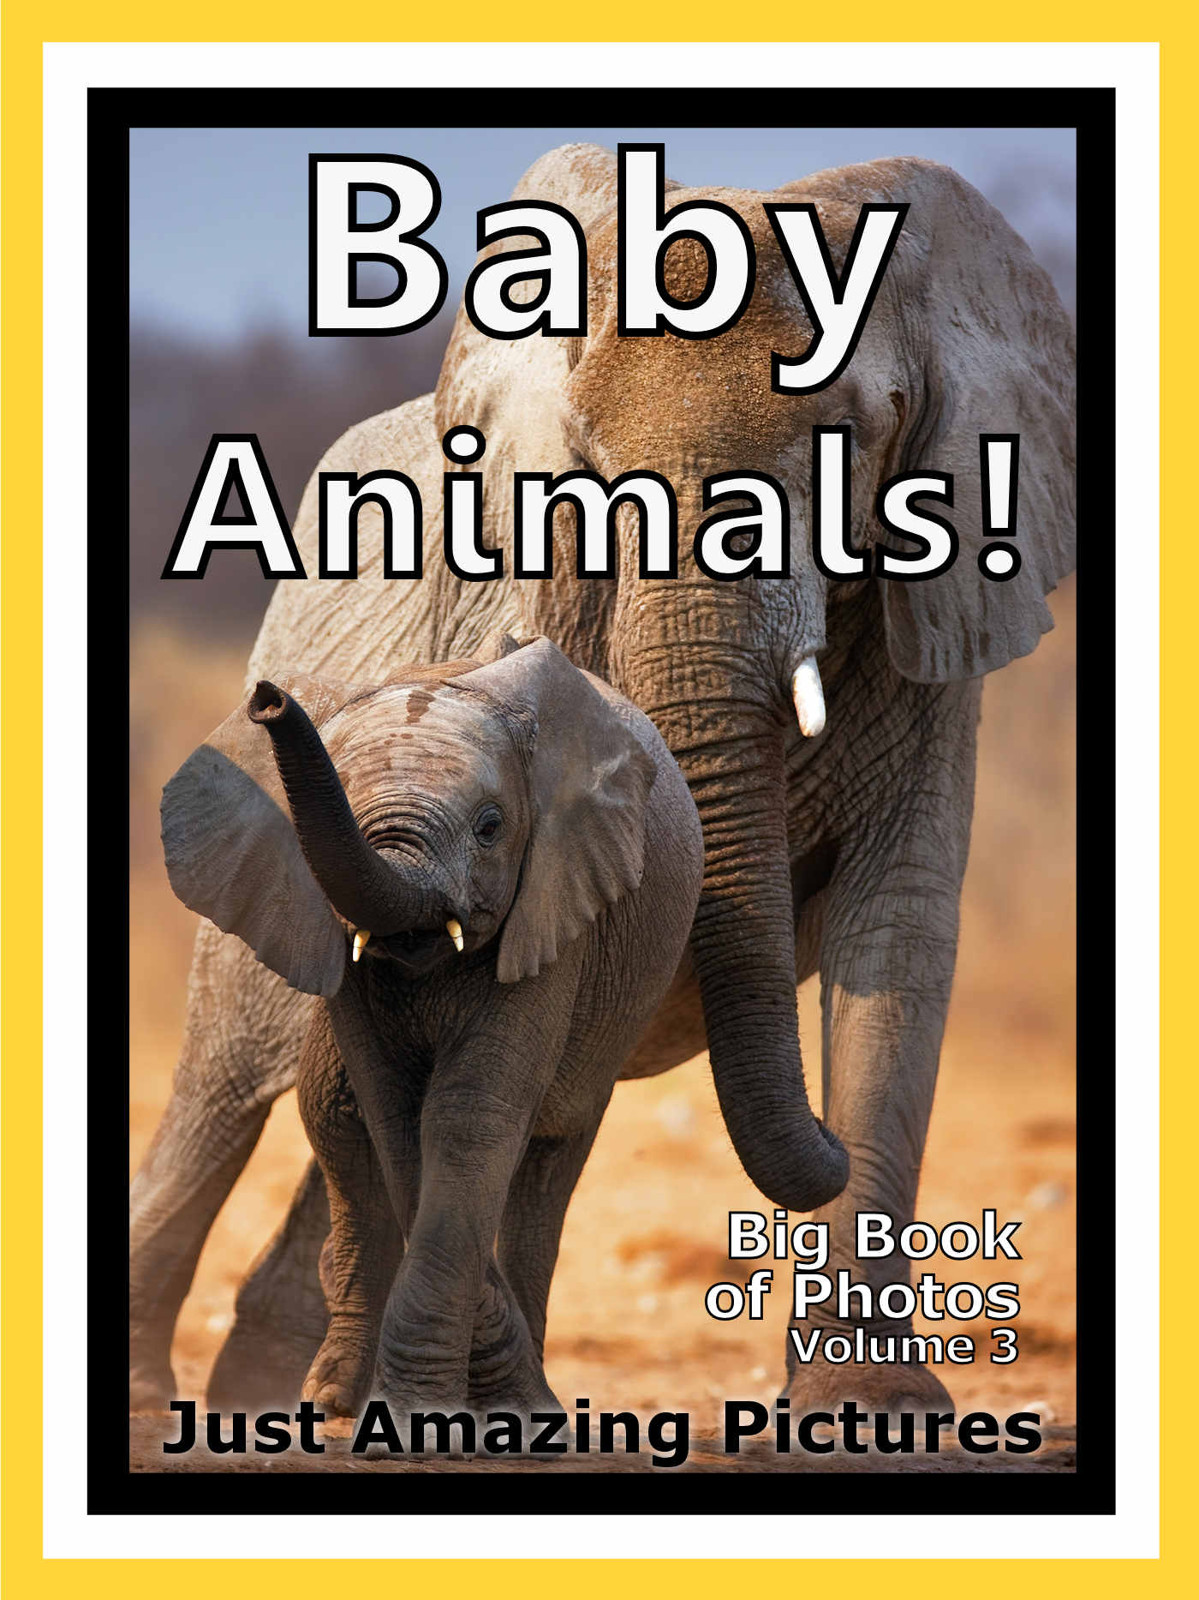 Just Baby Animal Photos! Big Book of Photographs & Pictures of Baby Animals, Vol. 3